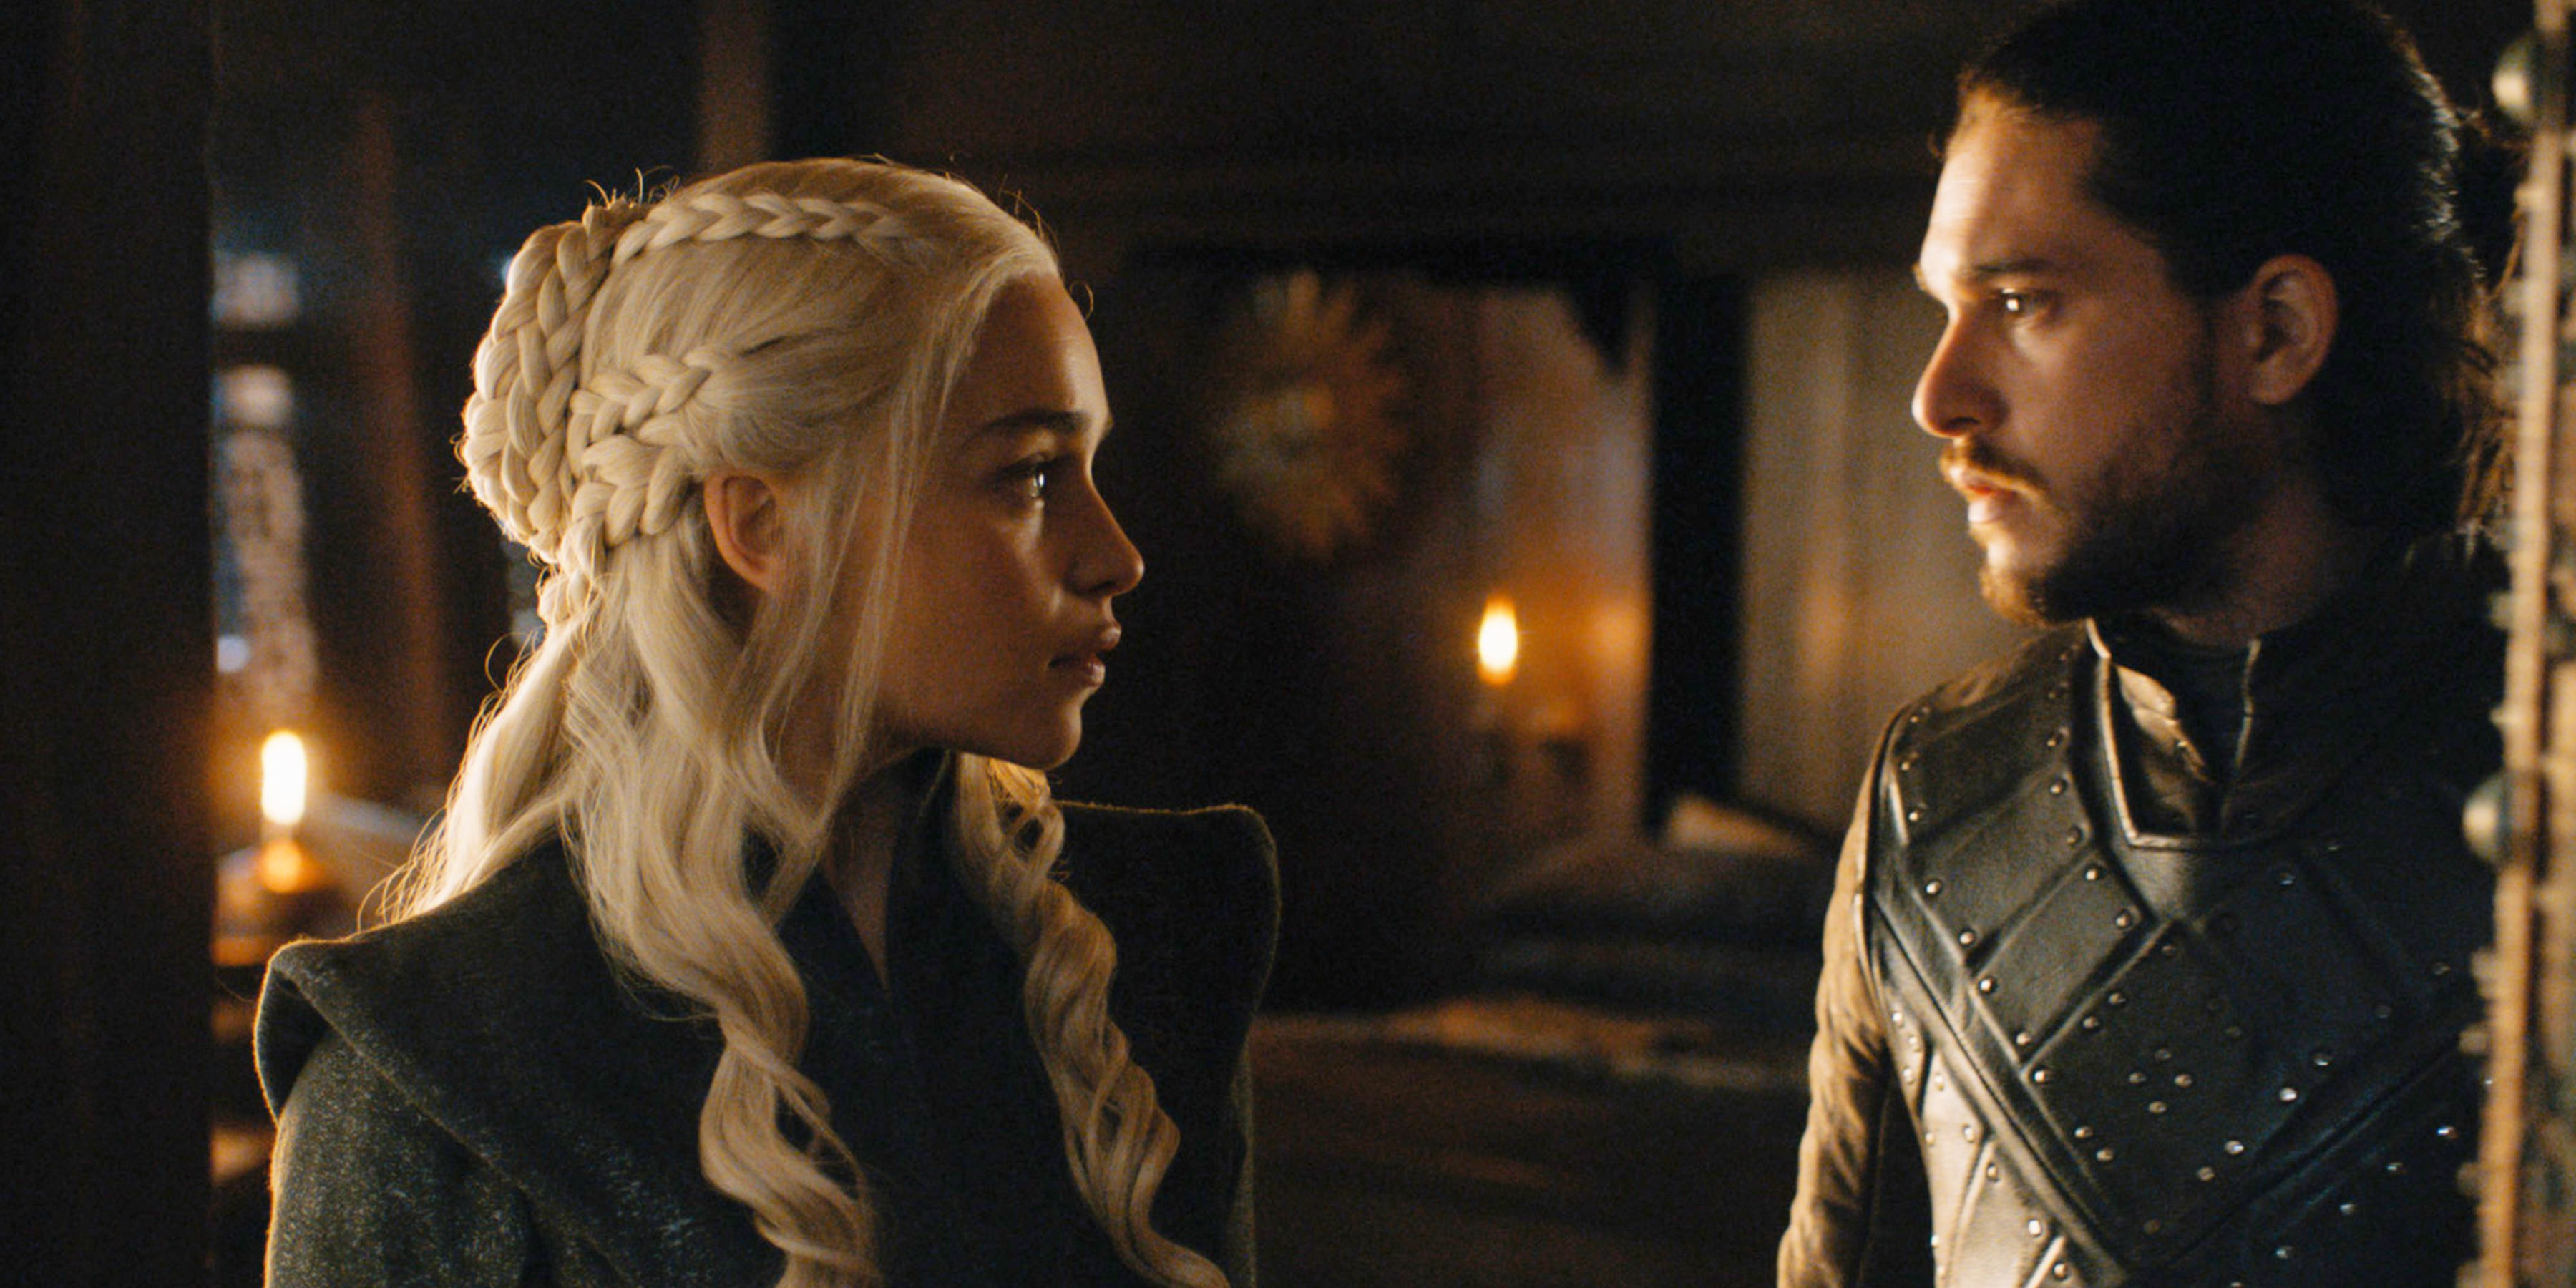 Game of Thrones fans will be 'surprised by intimacy' and 'spectacular' battles in season 8